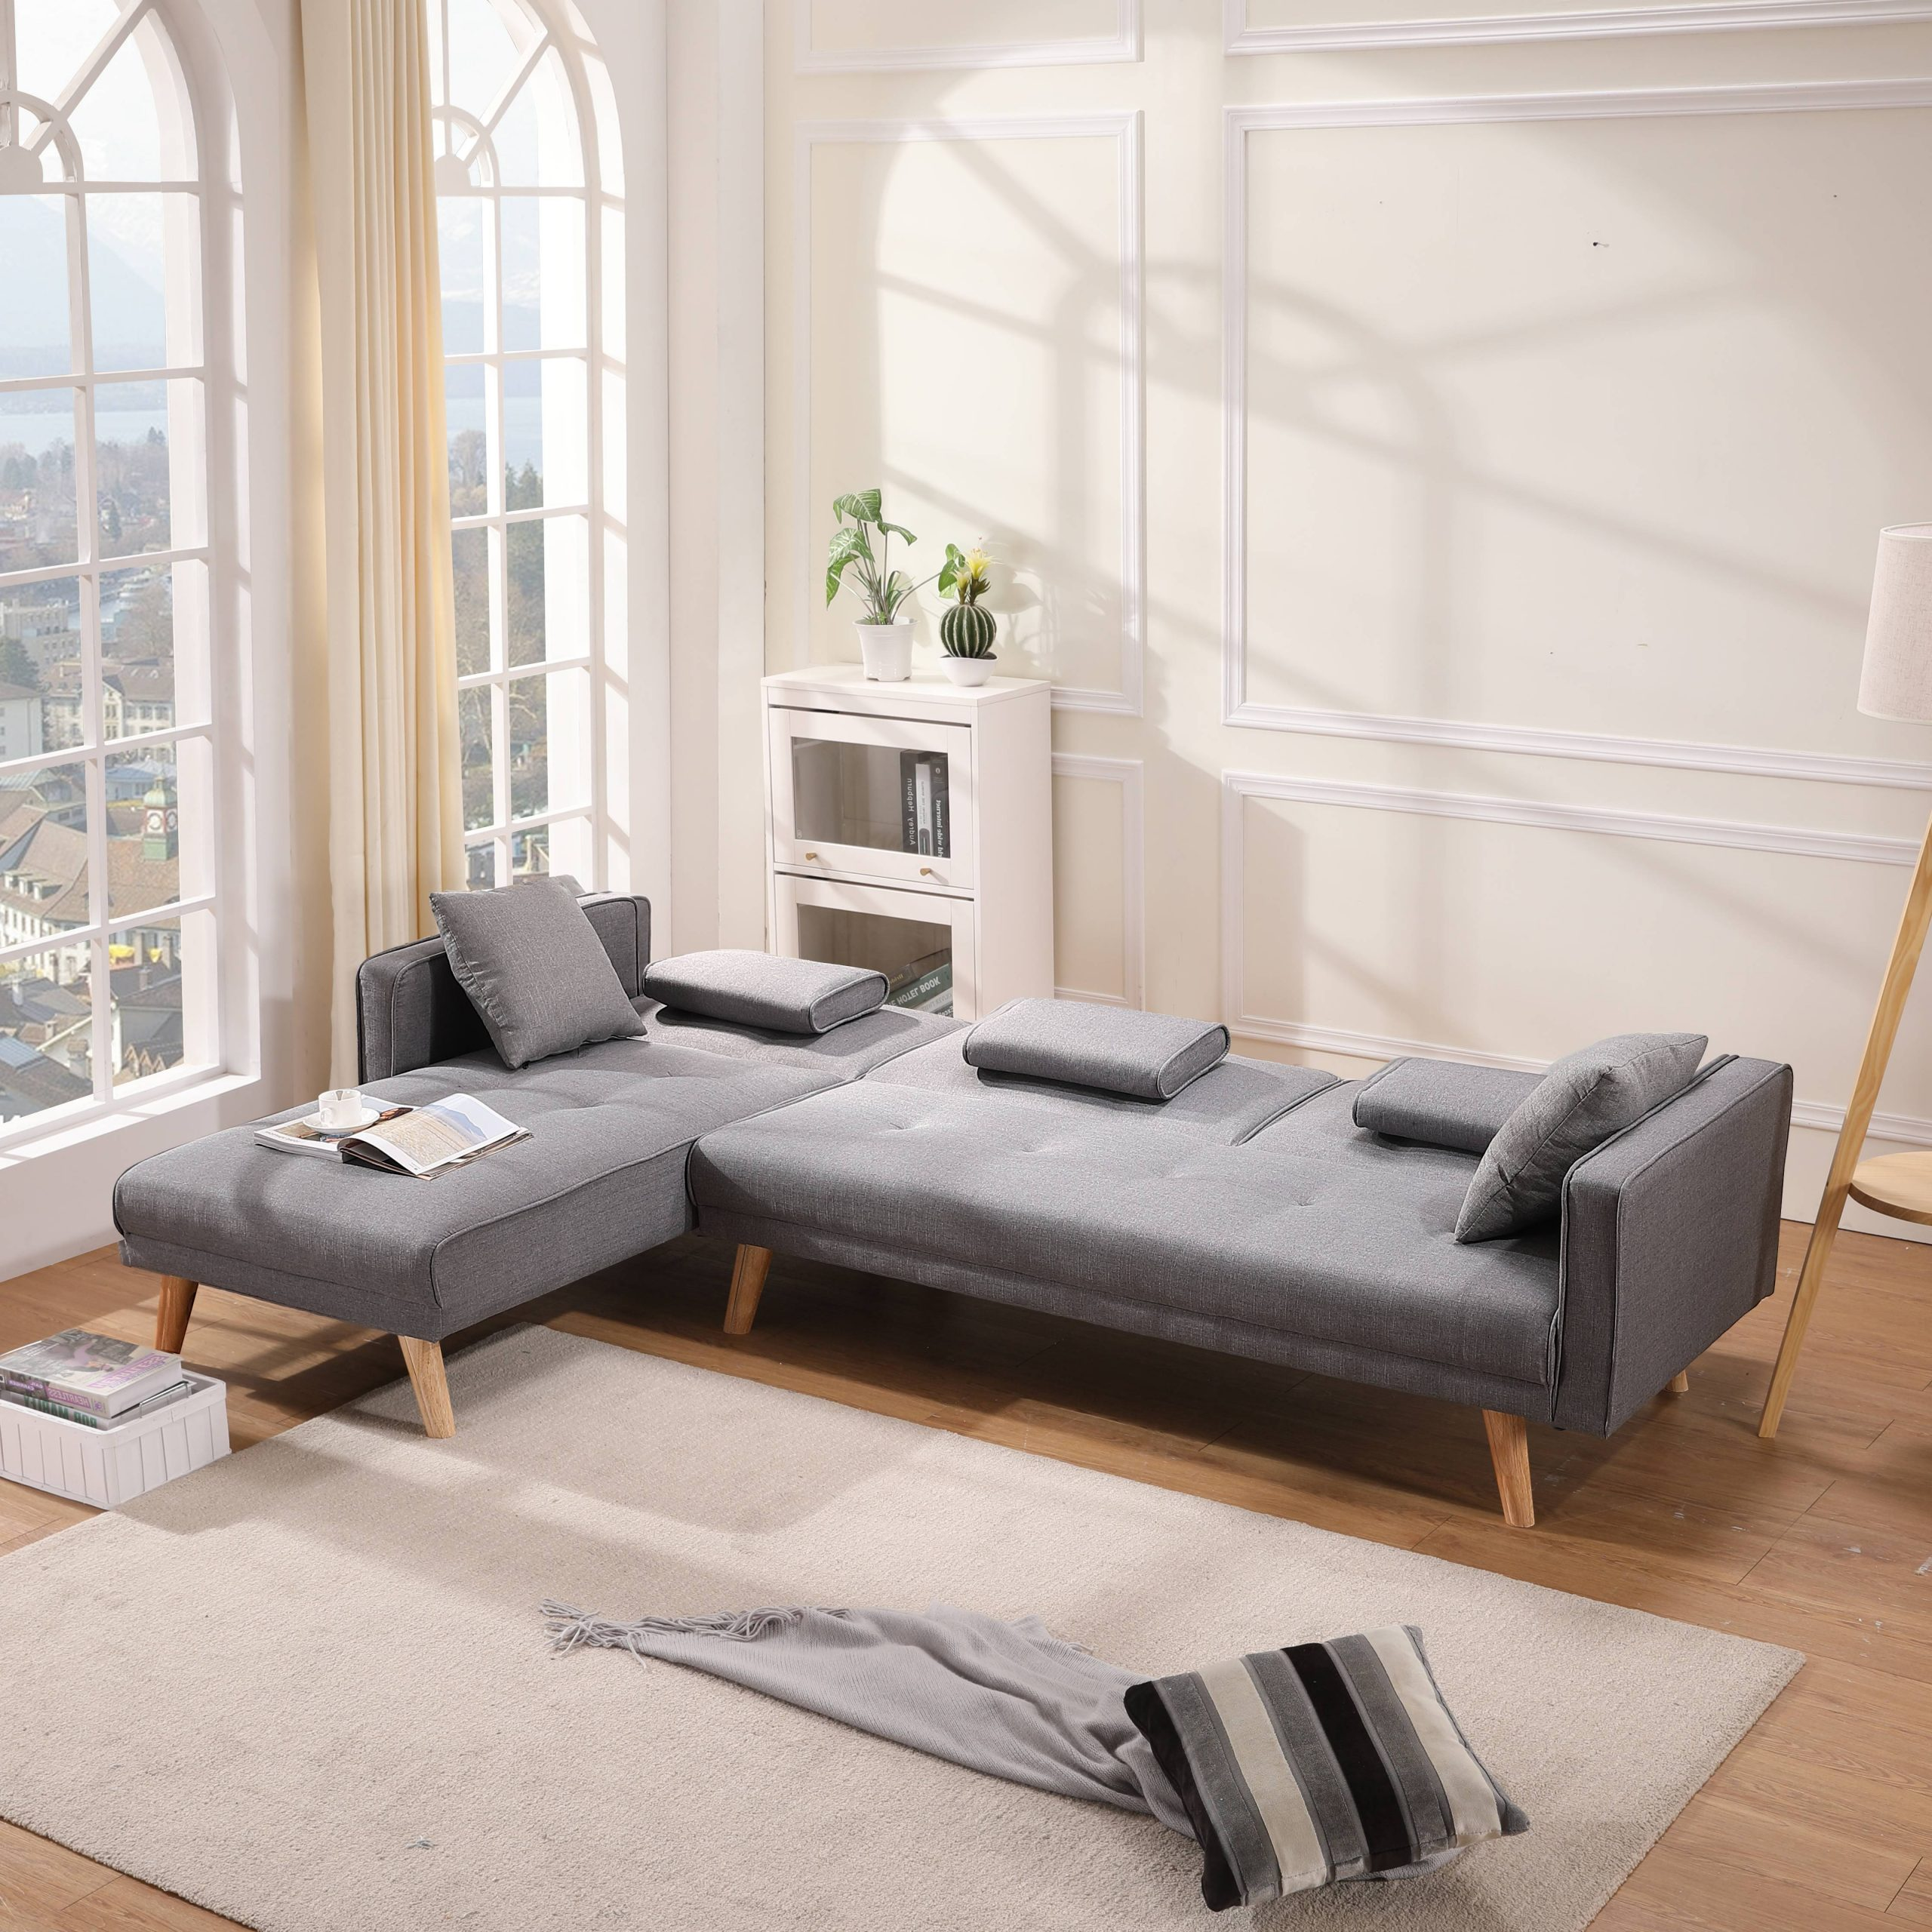 2Pc Crowningshield Contemporary Chaise Sofas Light Gray Throughout Recent Clearance! 2 Piece Contemporary Sectional Sofa Set, Queen (View 24 of 25)